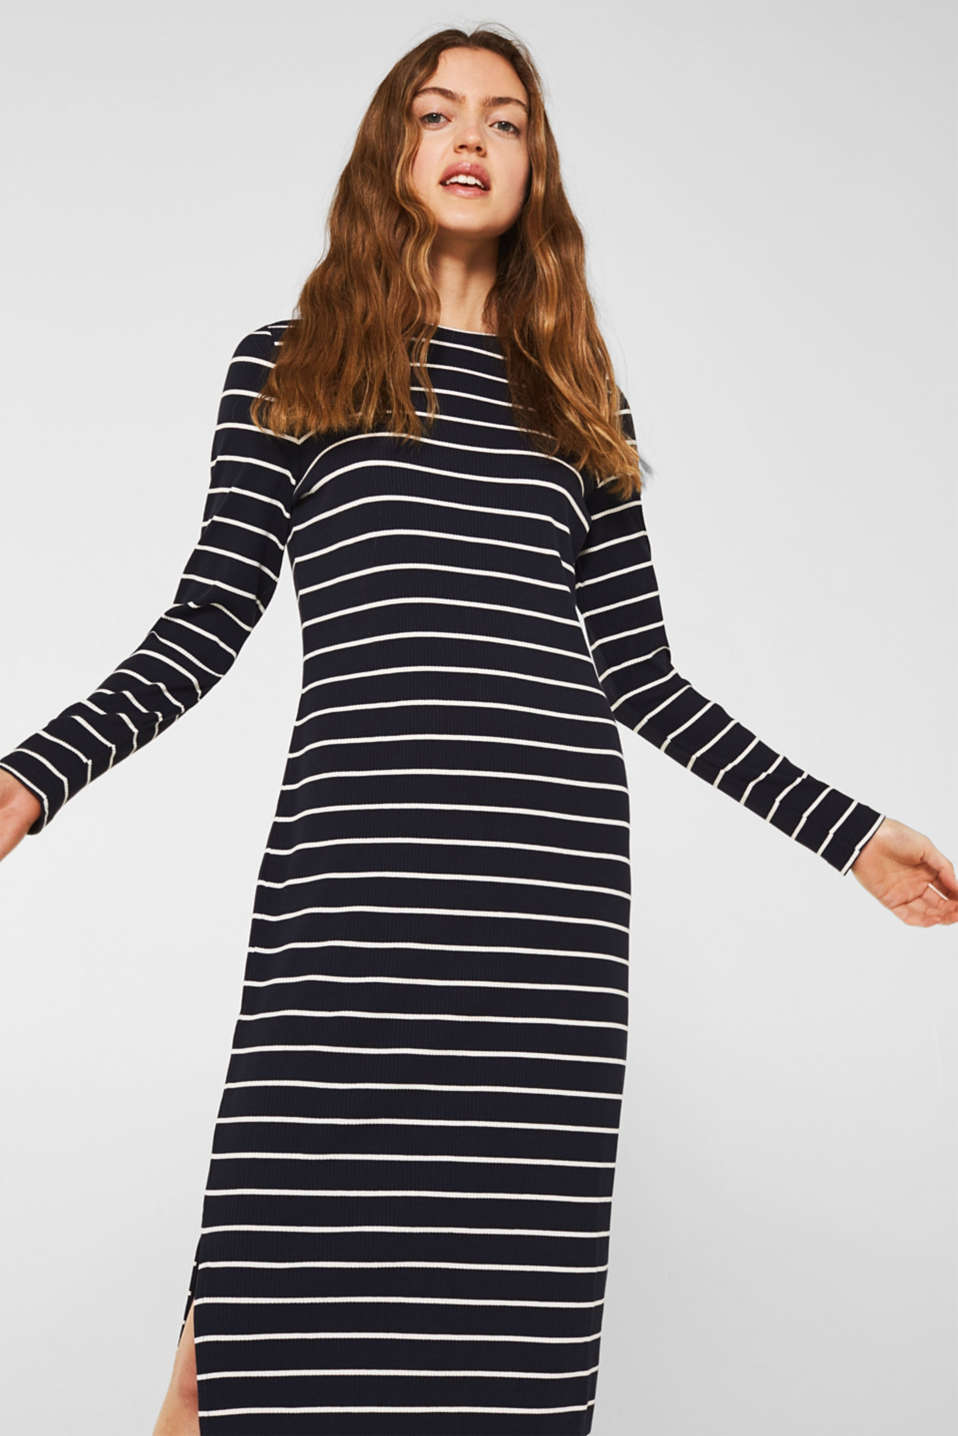 Stretch jersey dress with stripes and texture